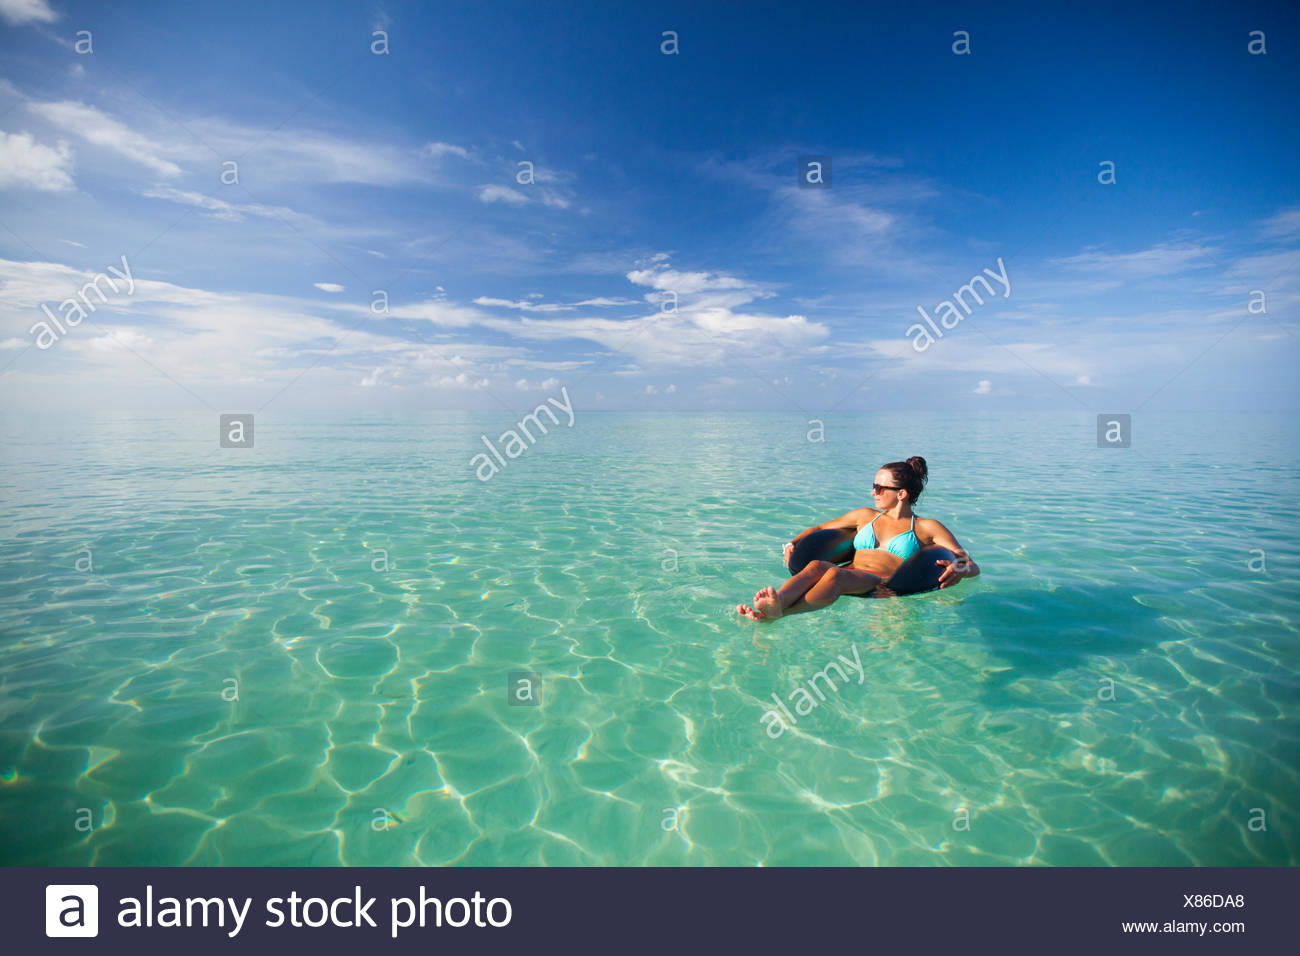 A young woman floats on an inflatable water toy in turquoise water. Stock Photo